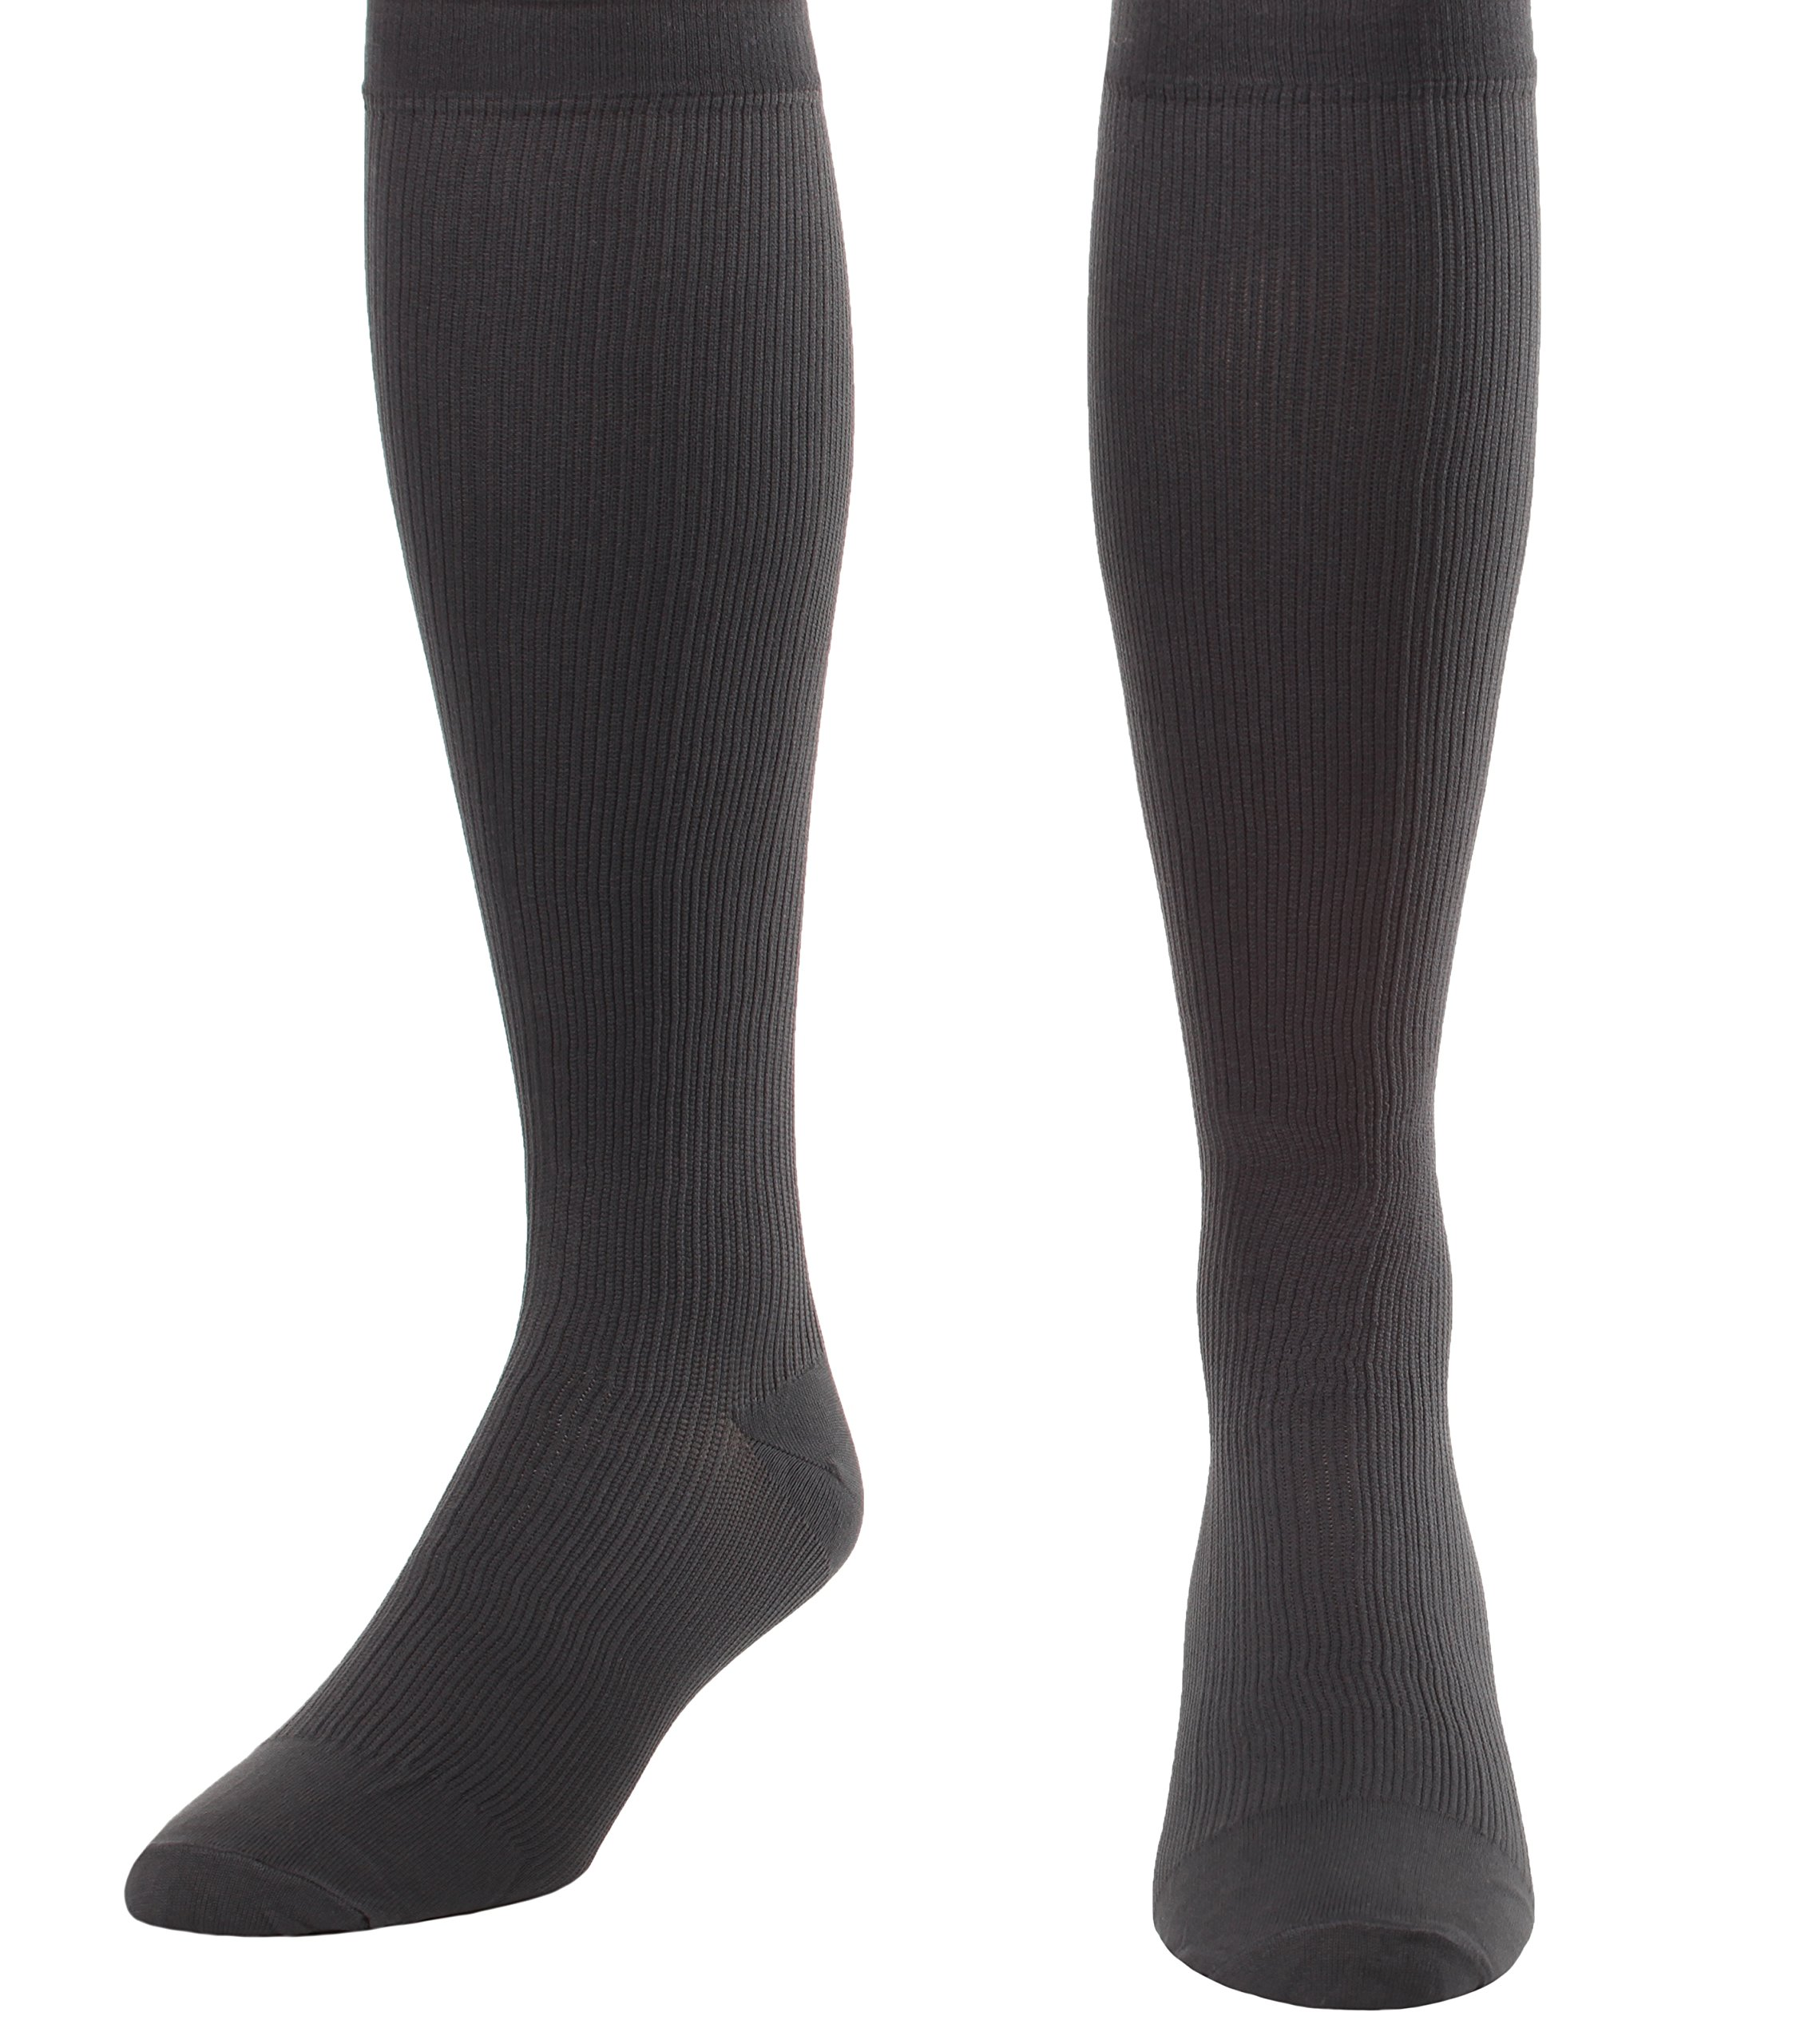 Made in The USA - Medical Compression Socks for Men, Firm Graduated Support Socks 20-30mmHg - Closed Toe - 1 Pair - Absolute Support, SKU: A104GR3 (Grey, Large) - Helps with Poor Circulation, Edema